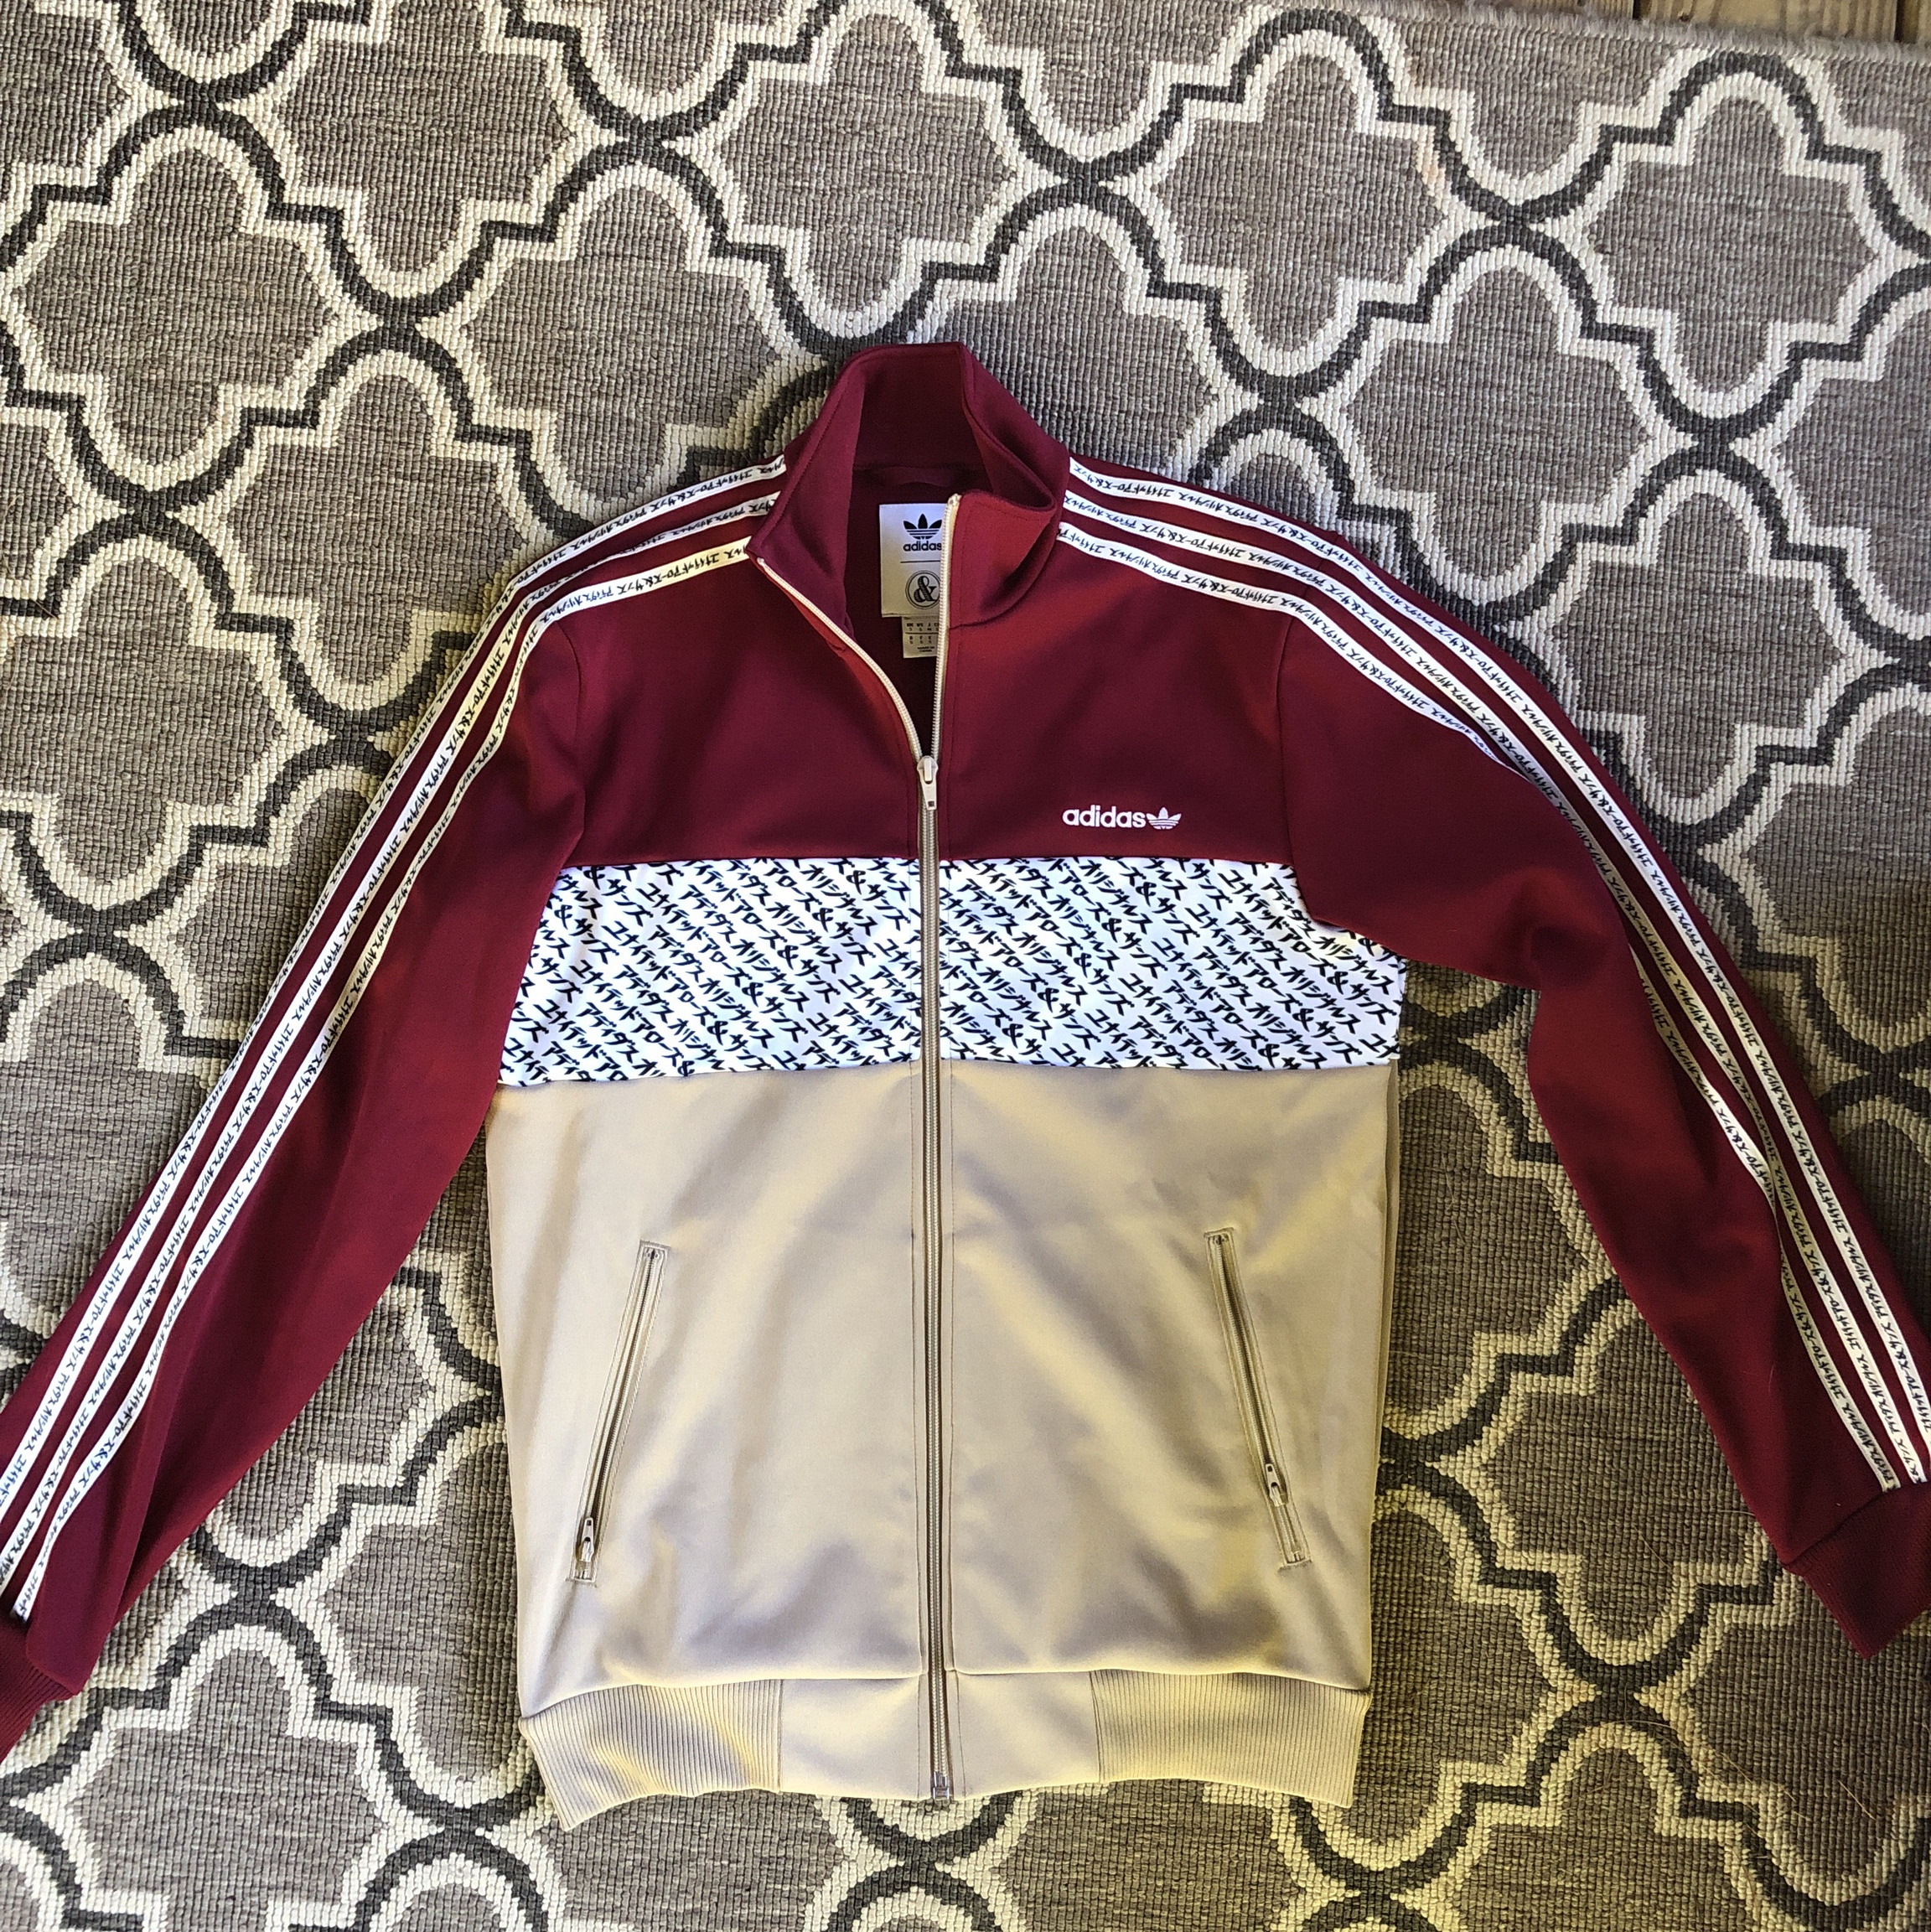 newest a7d75 f1251 United Arrows X Adidas Originals X Mikitype... - Depop